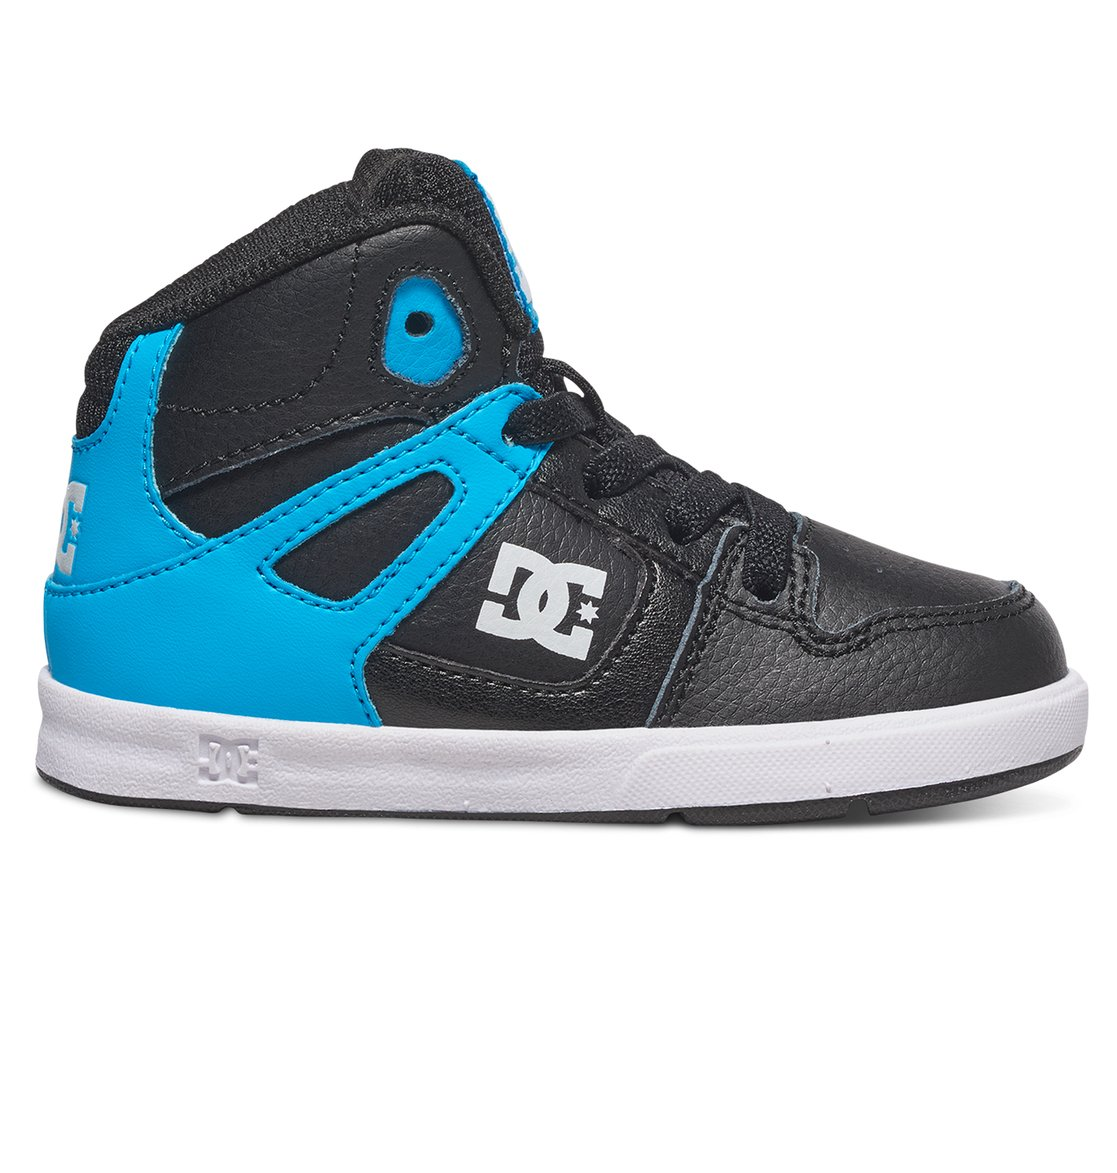 White Dc Shoes For Toddlers